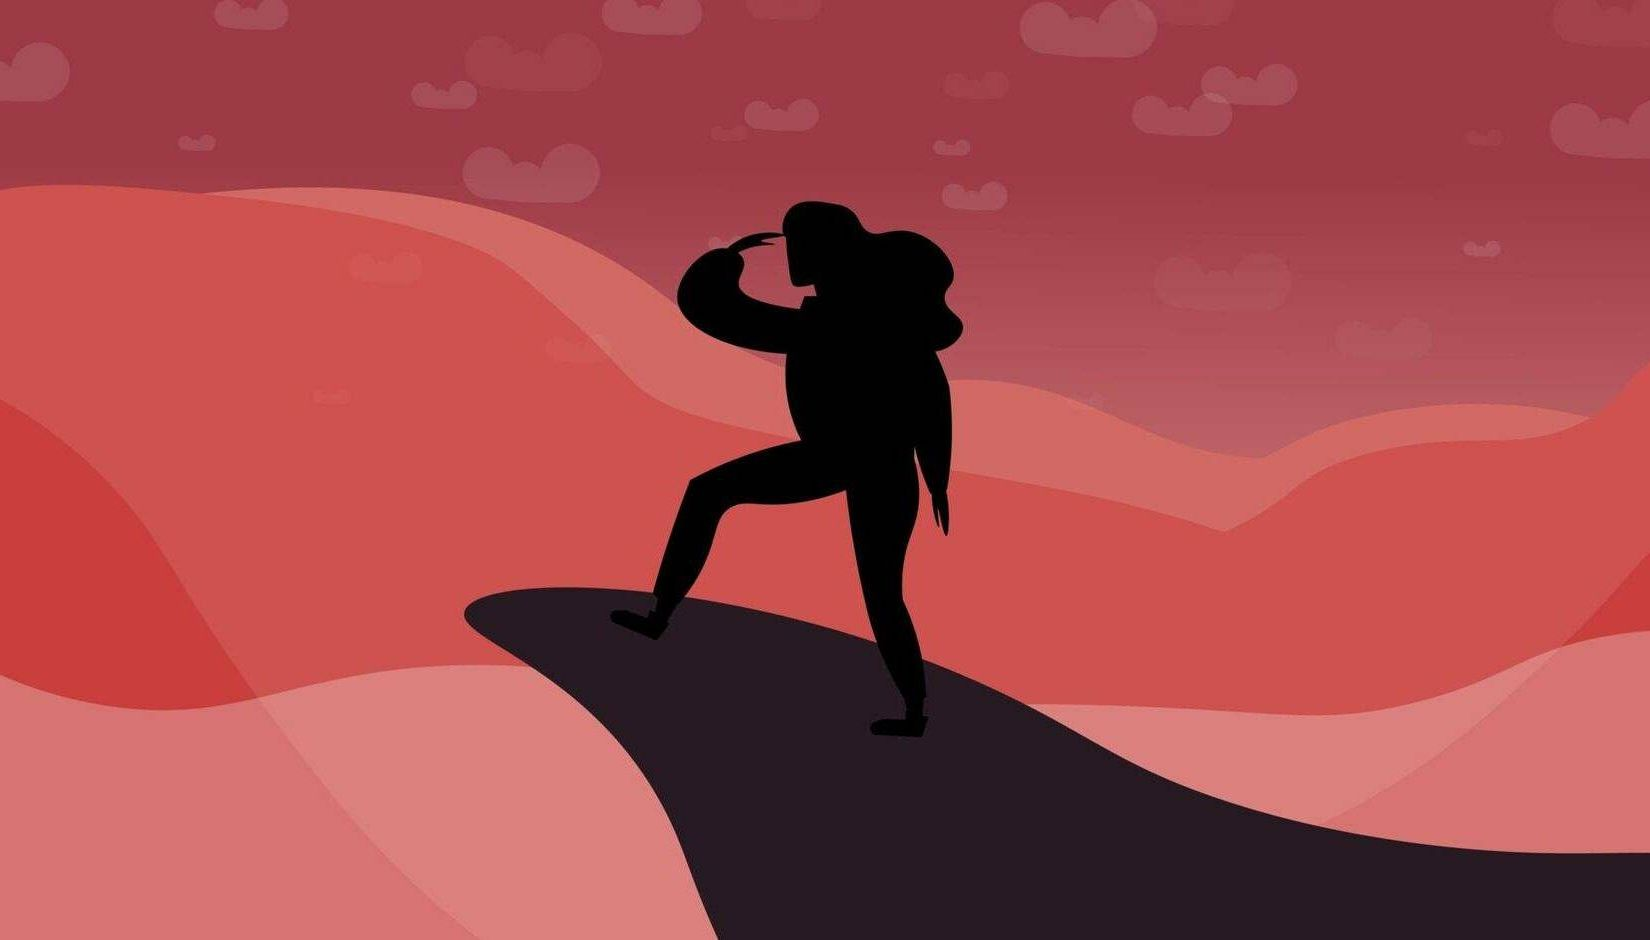 Illustrated silhouette of a traveler standing on top of a mountain